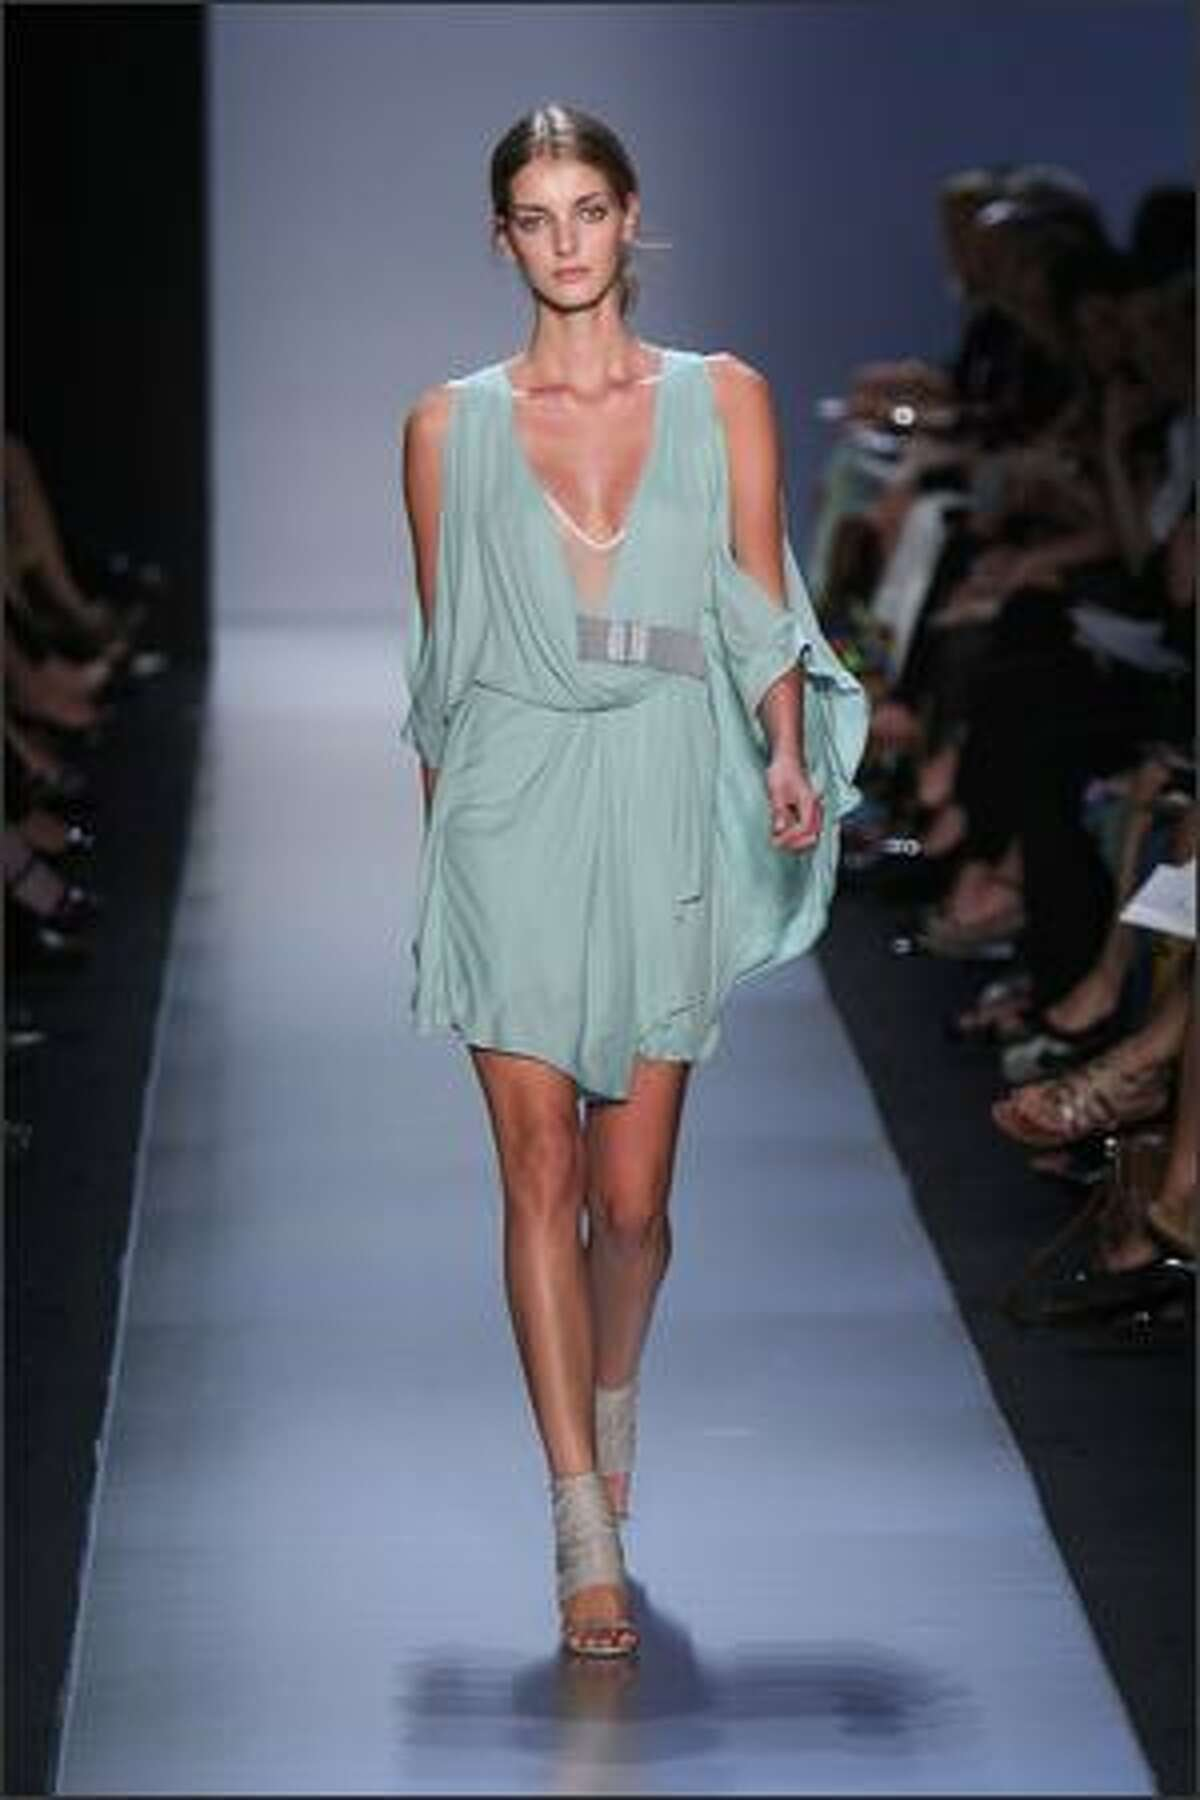 A model walks the runway at the Max Azria show.